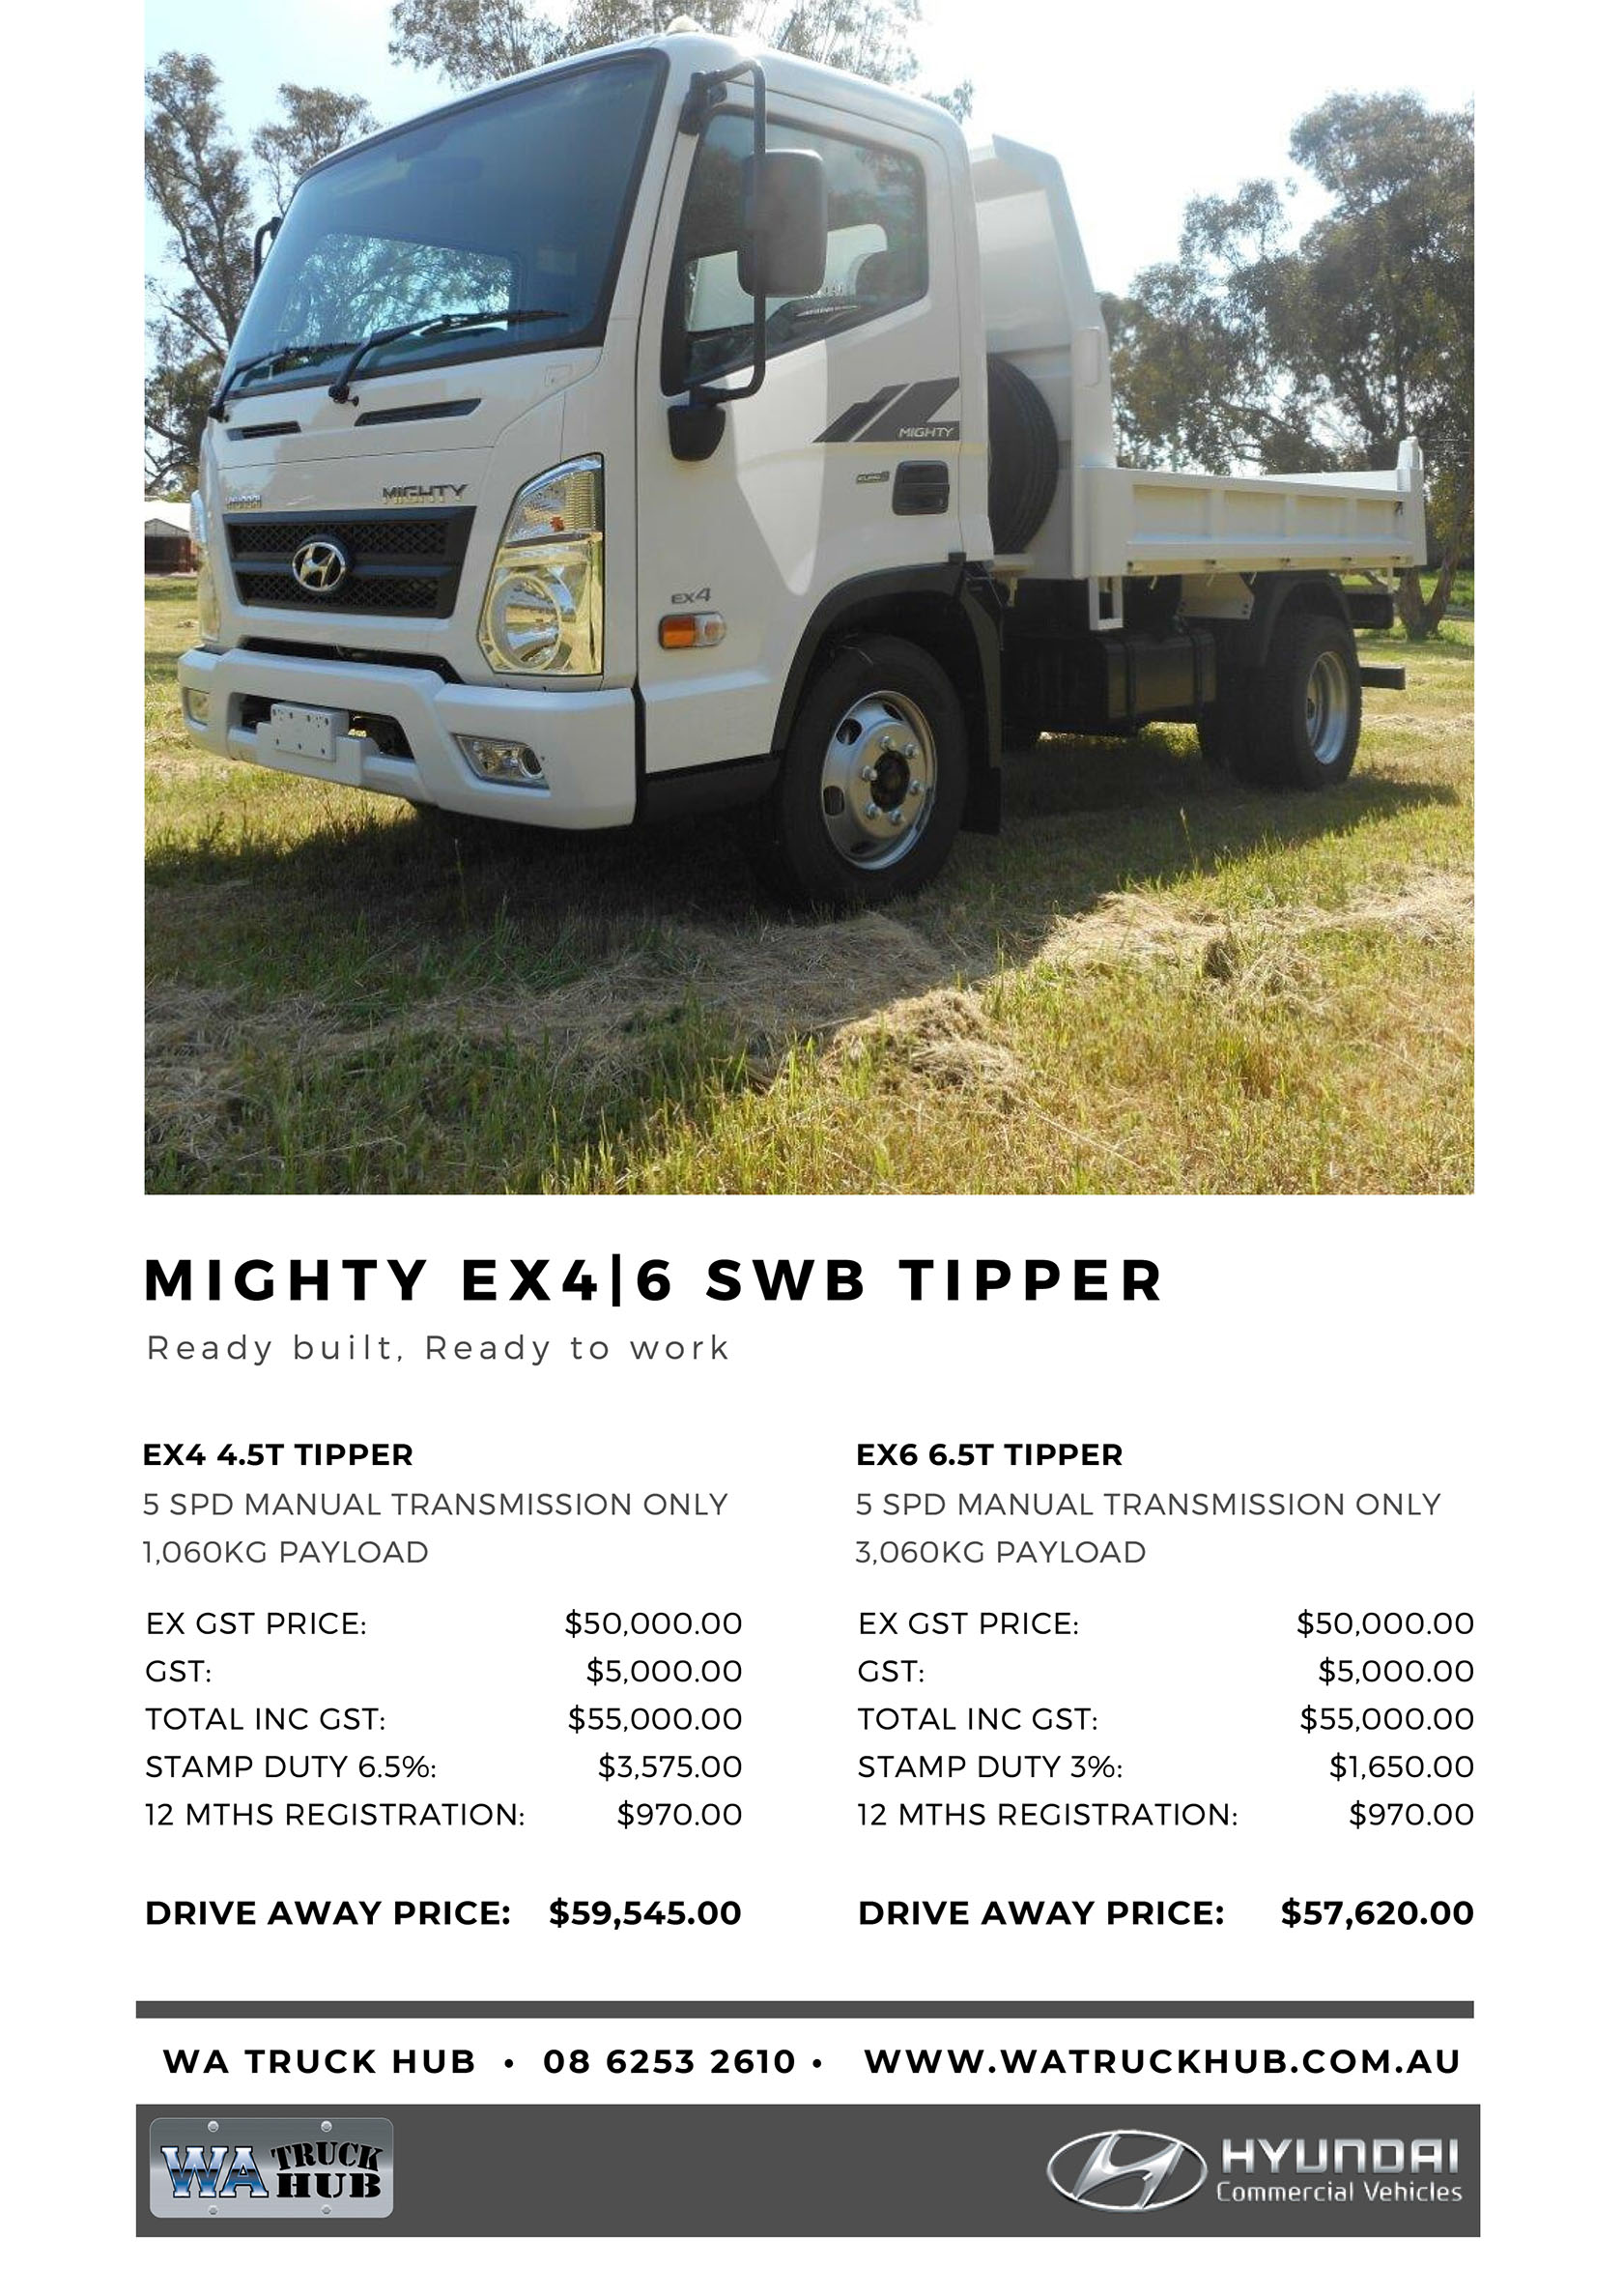 Mighty SWB Tipper Model